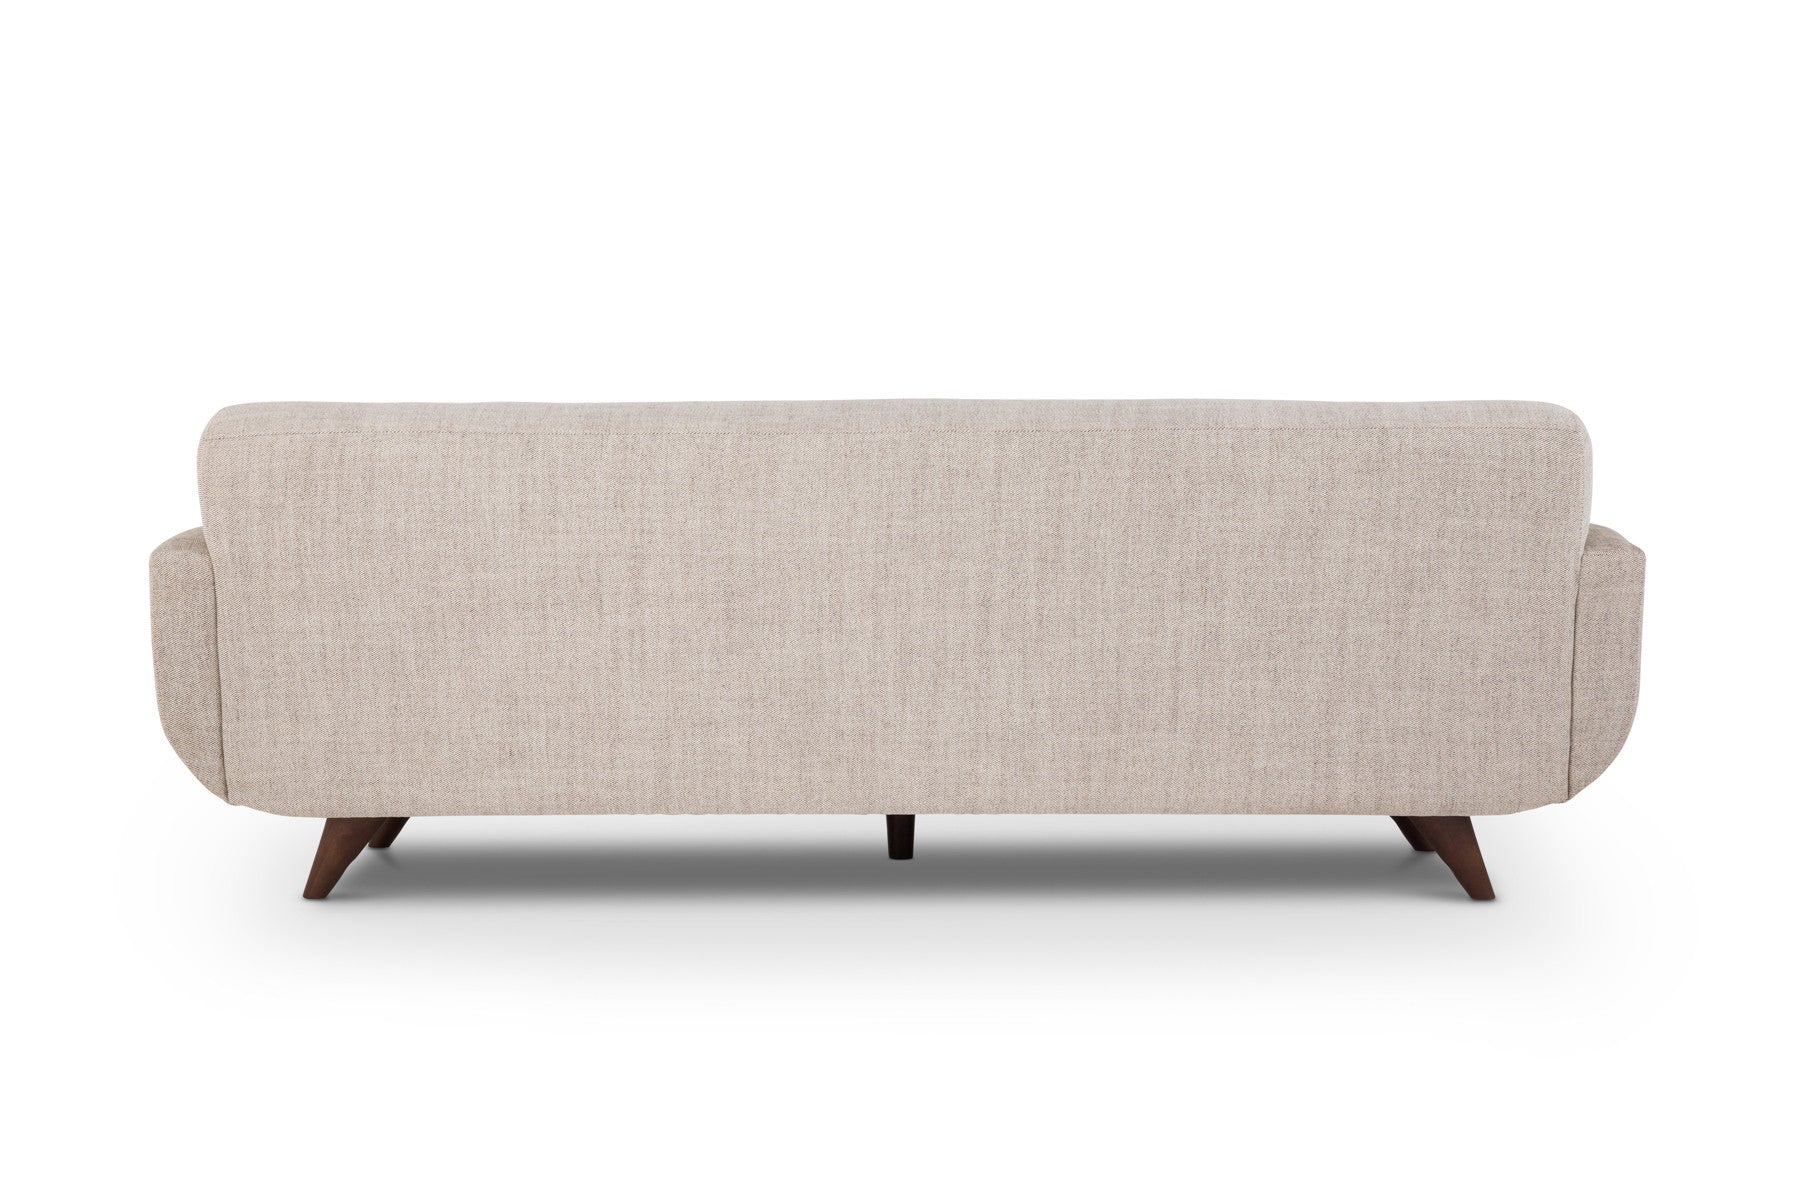 Danish modern living room sofa